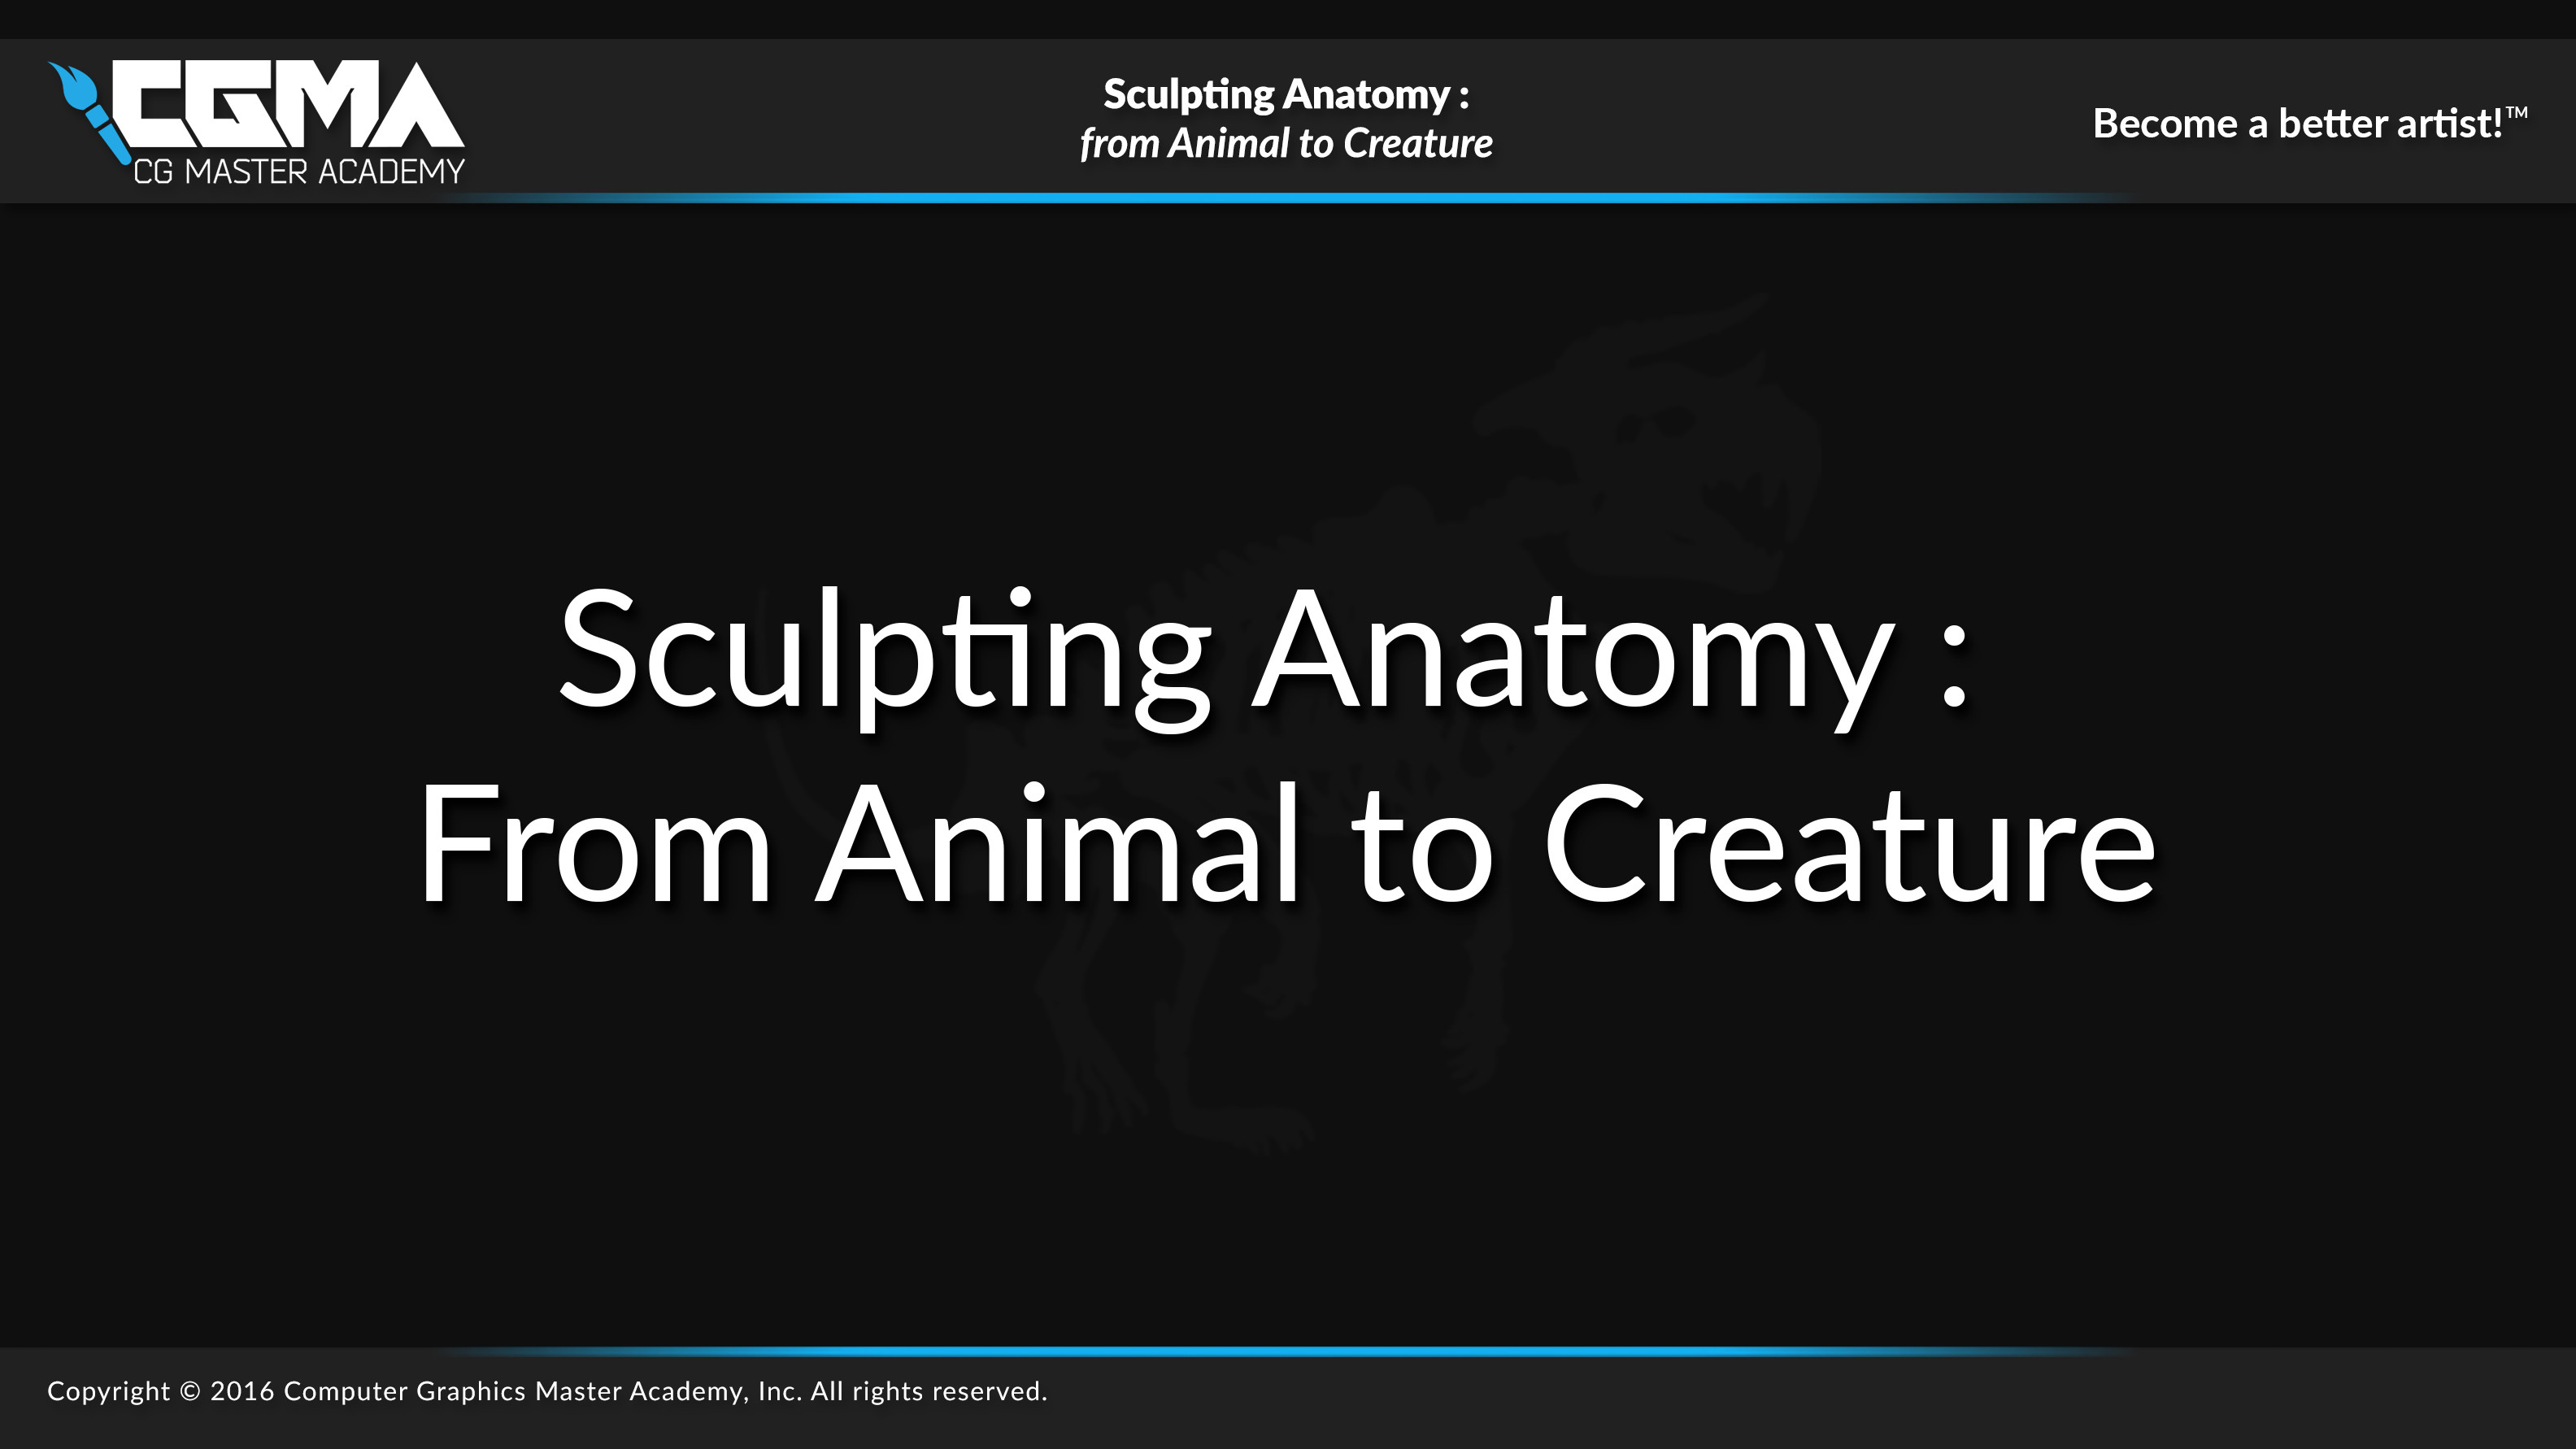 Full lecture available at CG Master Academy :